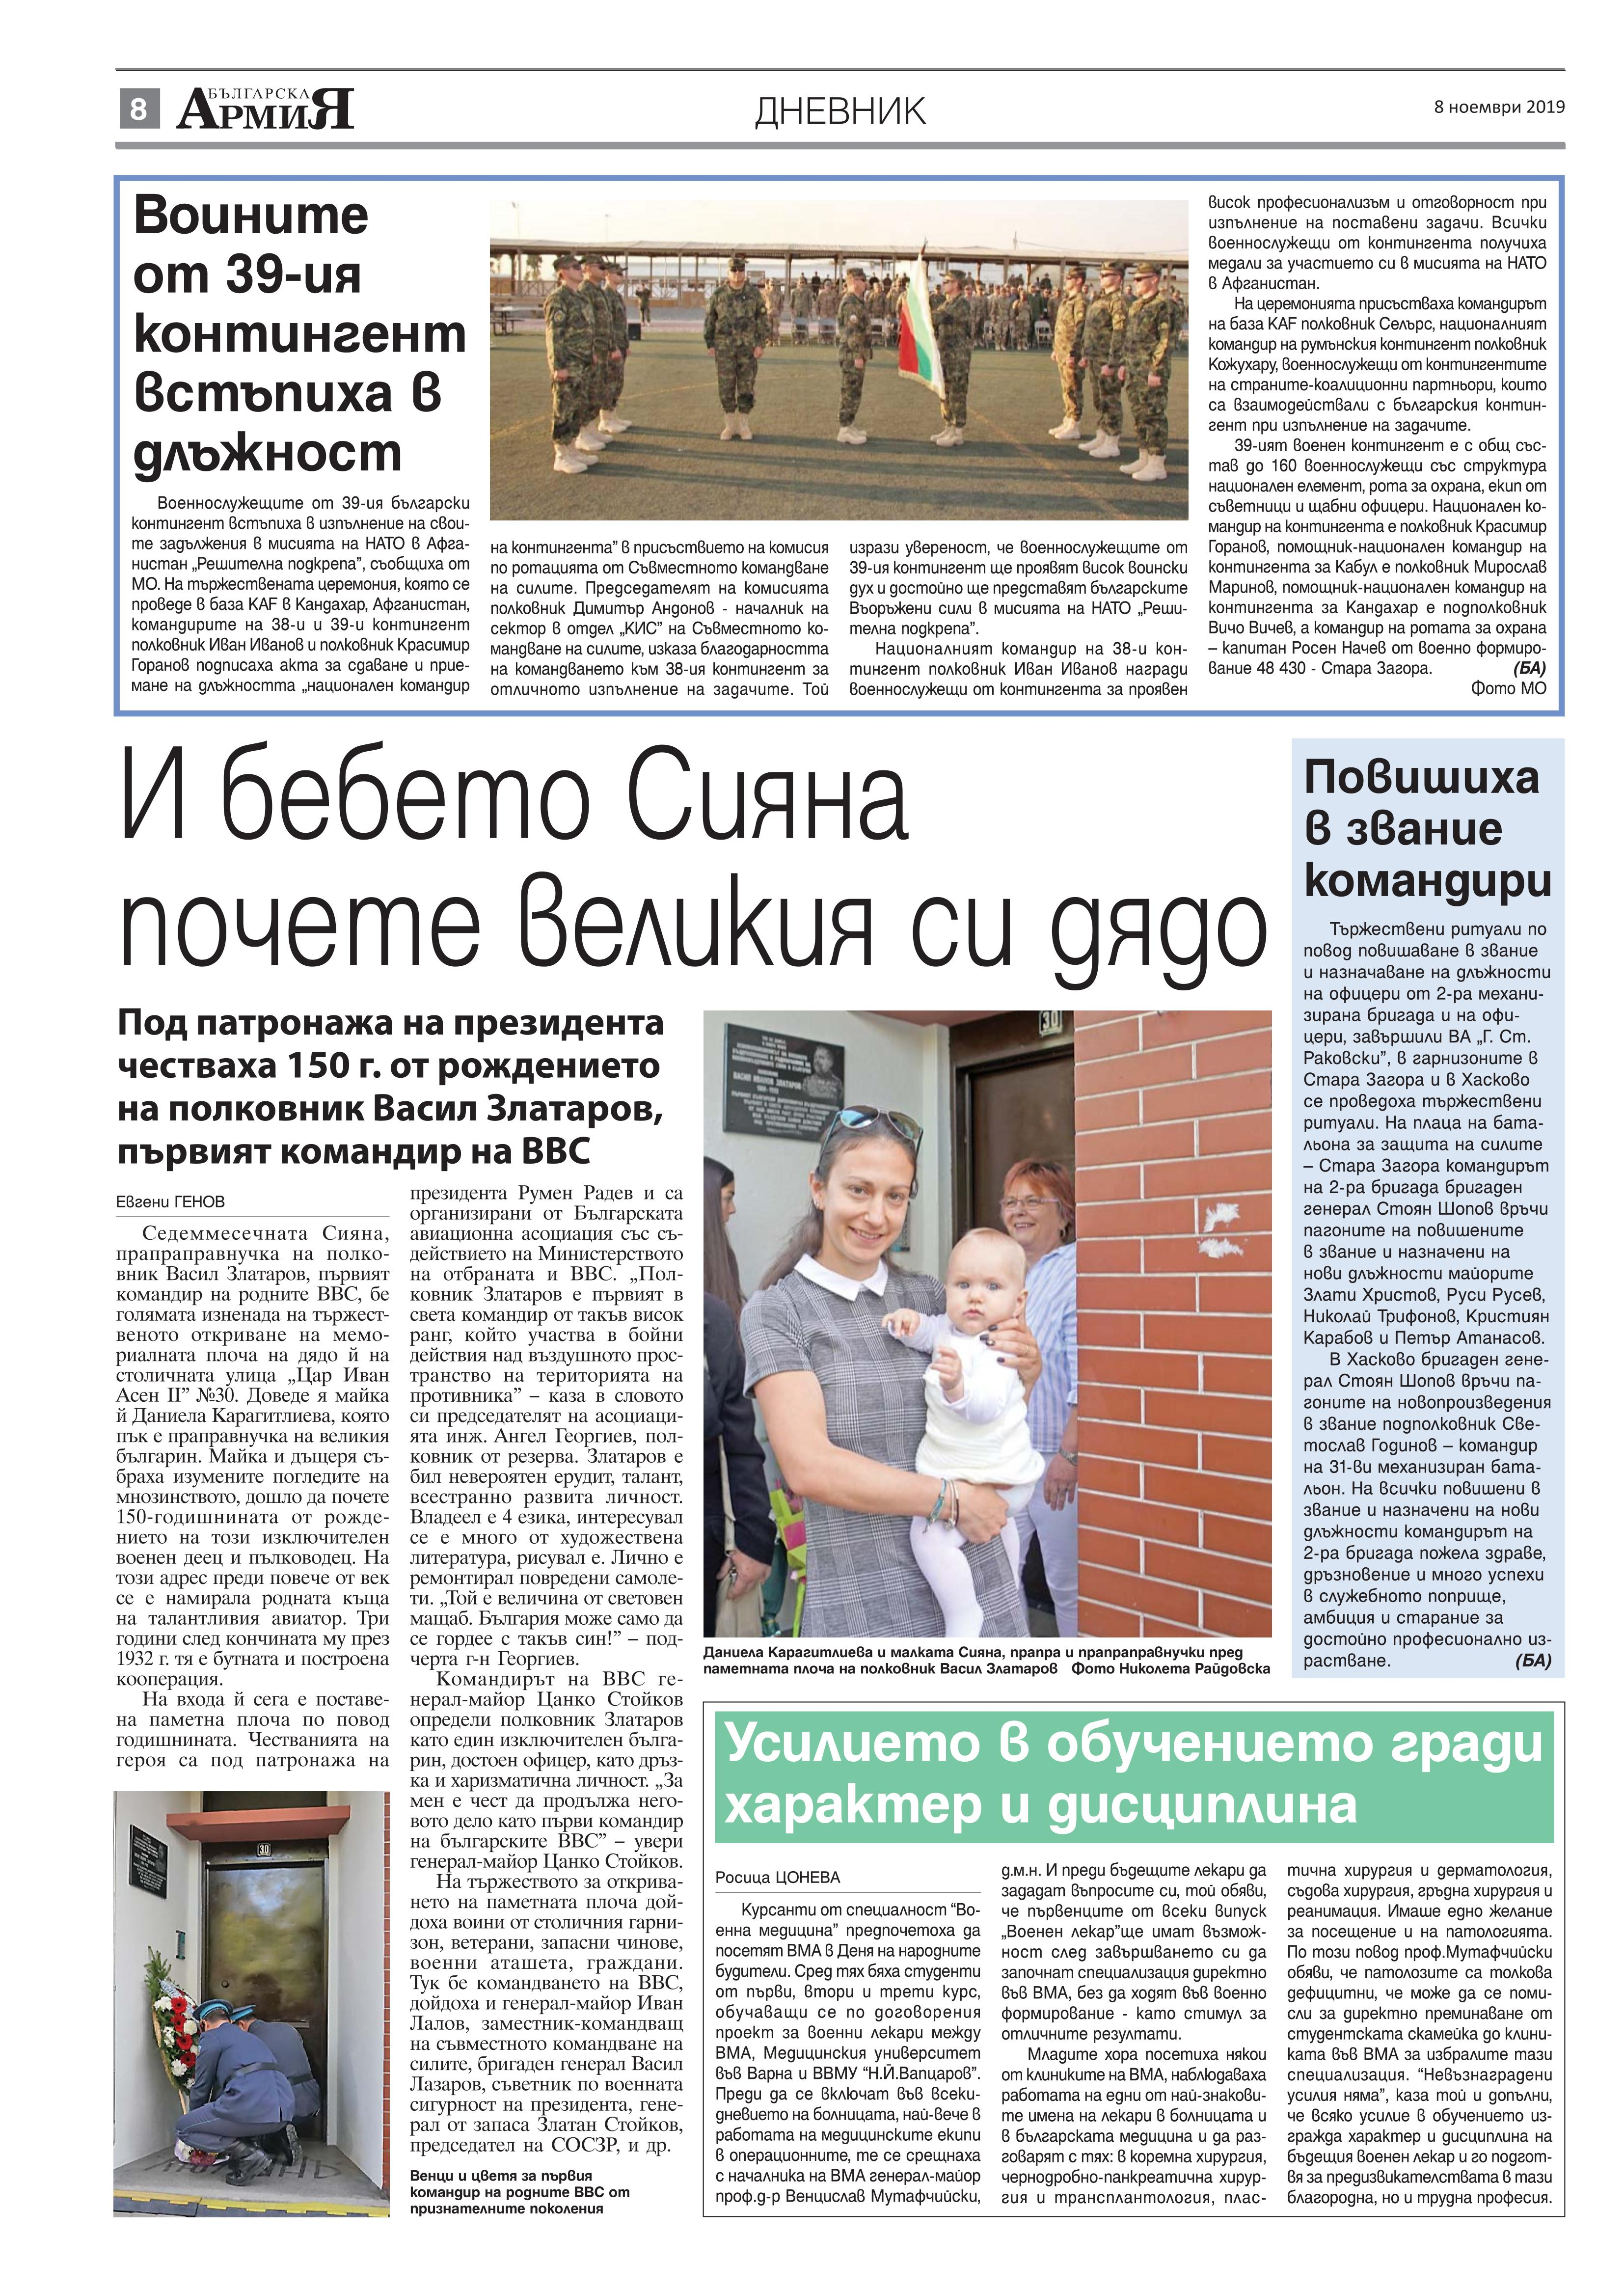 https://www.armymedia.bg/wp-content/uploads/2015/06/08.page1_-112.jpg